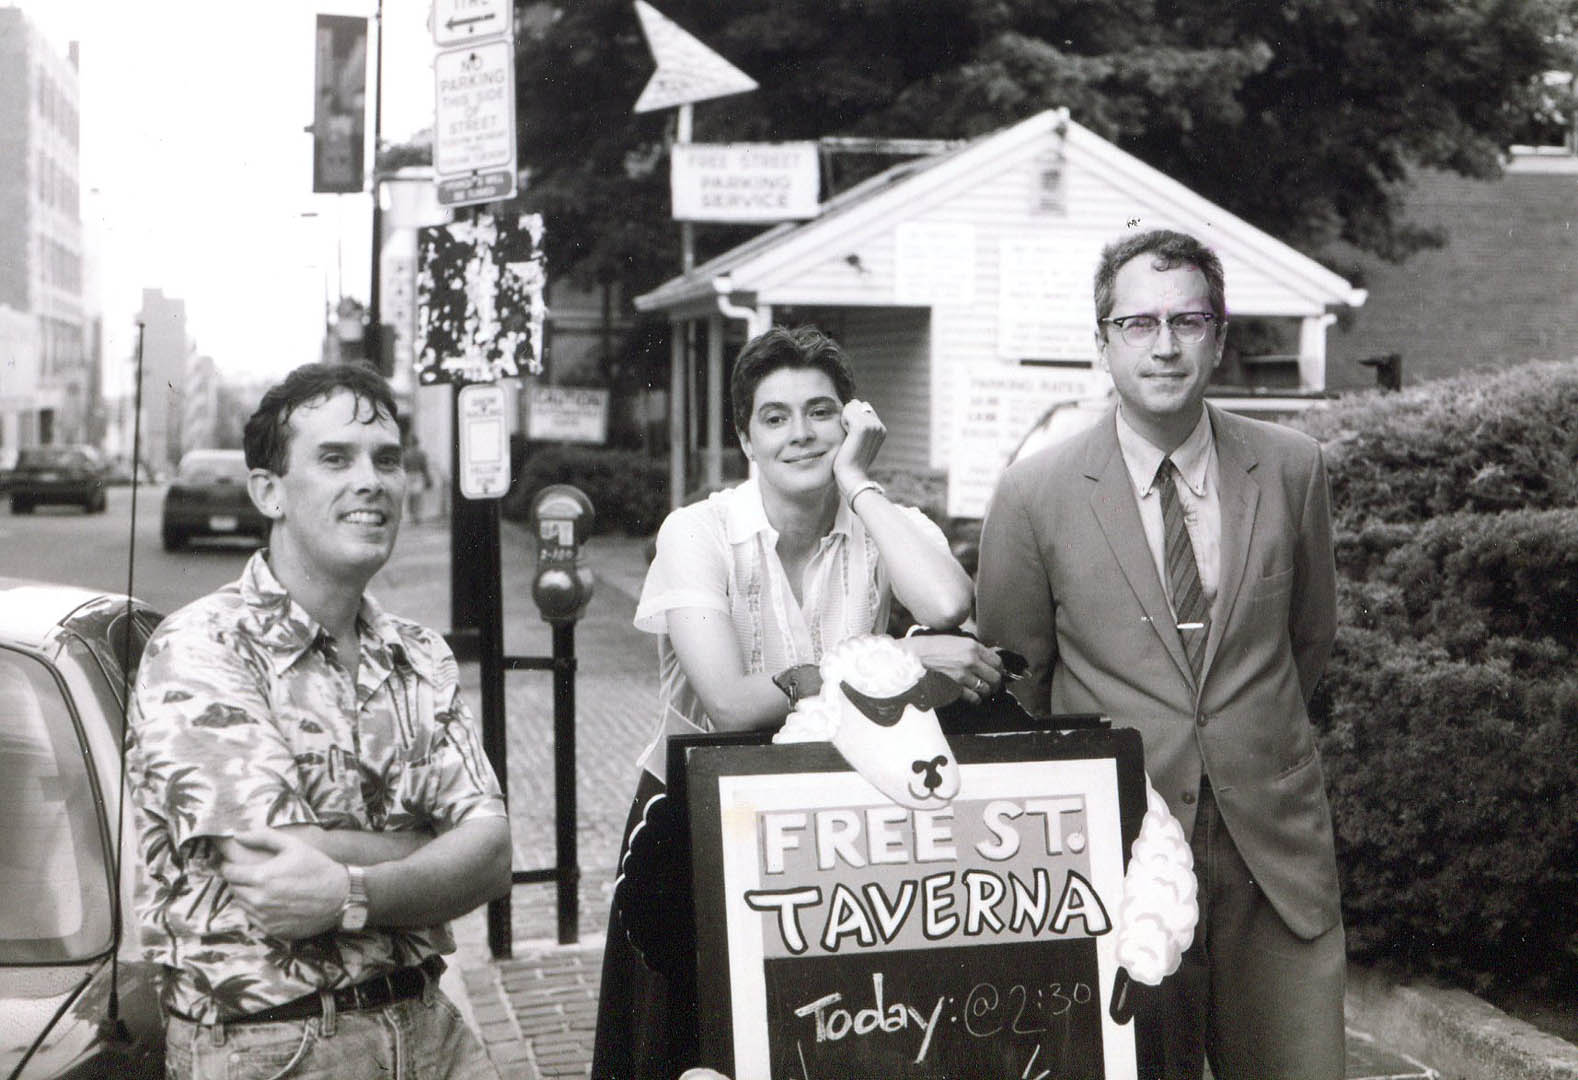 The Howling Turbines on a blistering hot day at the Free Street Taverna, Aug. 1, 1999: from left, drummer Ken Reynolds, bassist Gretchen Schaefer and me -- guitarist and singer Doug Hubley. Photo by Jeff Stanton.